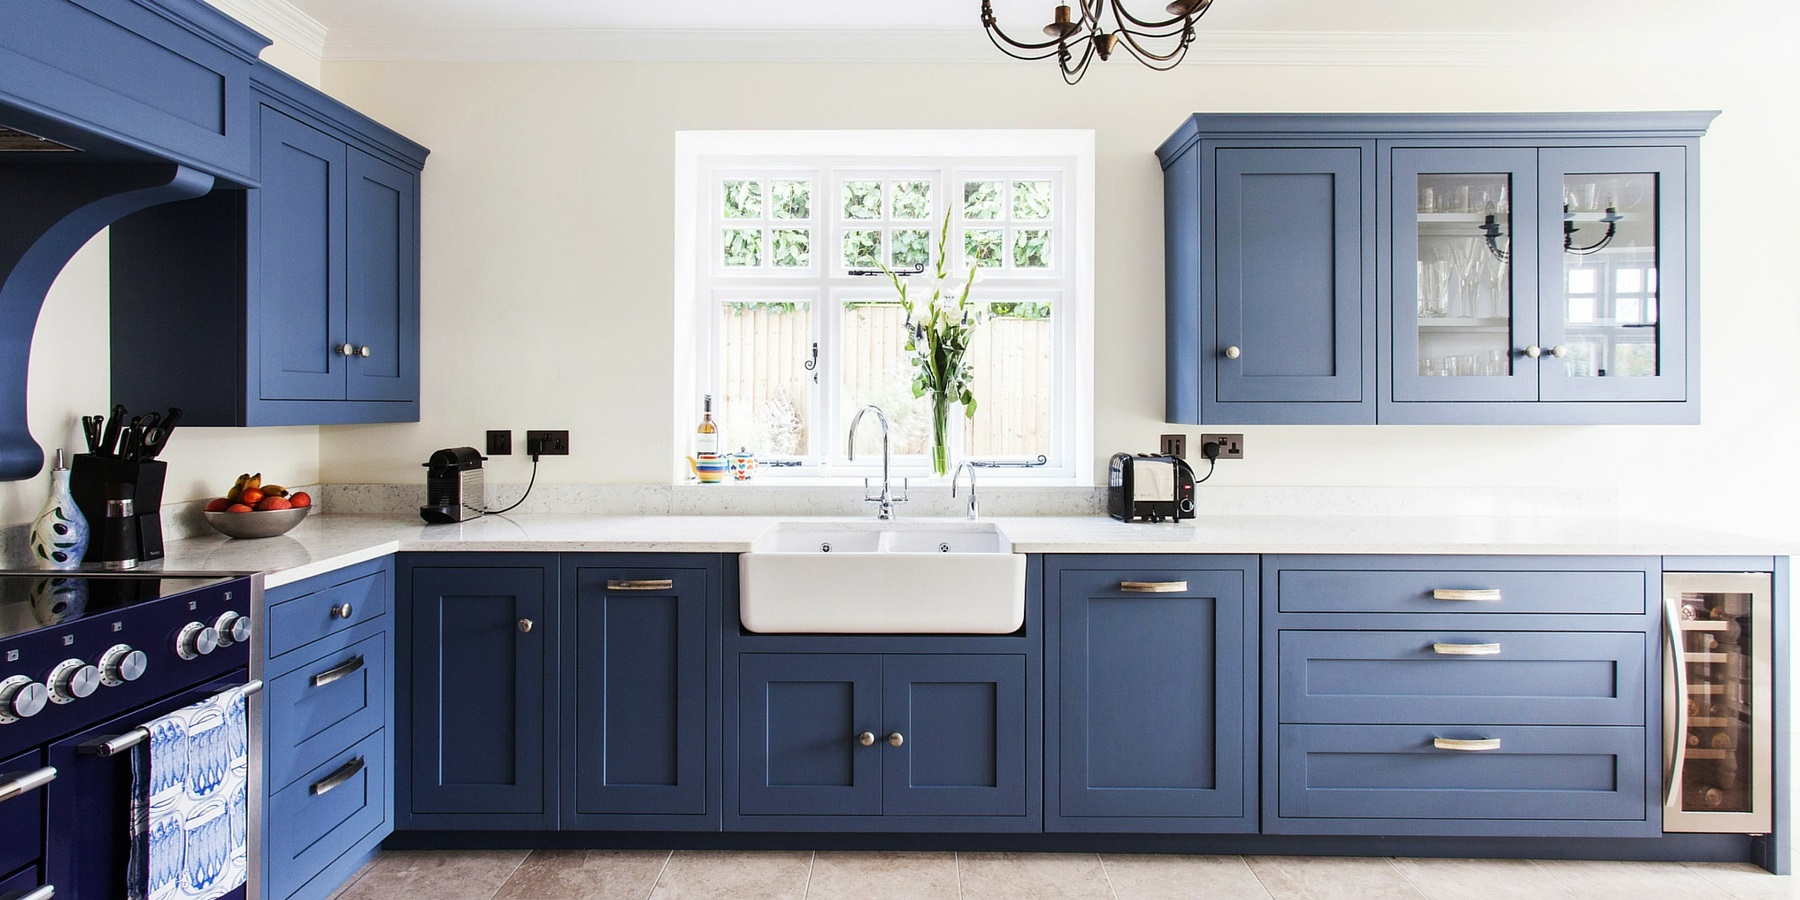 Bespoke Blue Galley Style Shaker Kitchen - Burlanes handmade Wellsdown kitchen with silver cup handles, a double Belfast sink and white worktops.